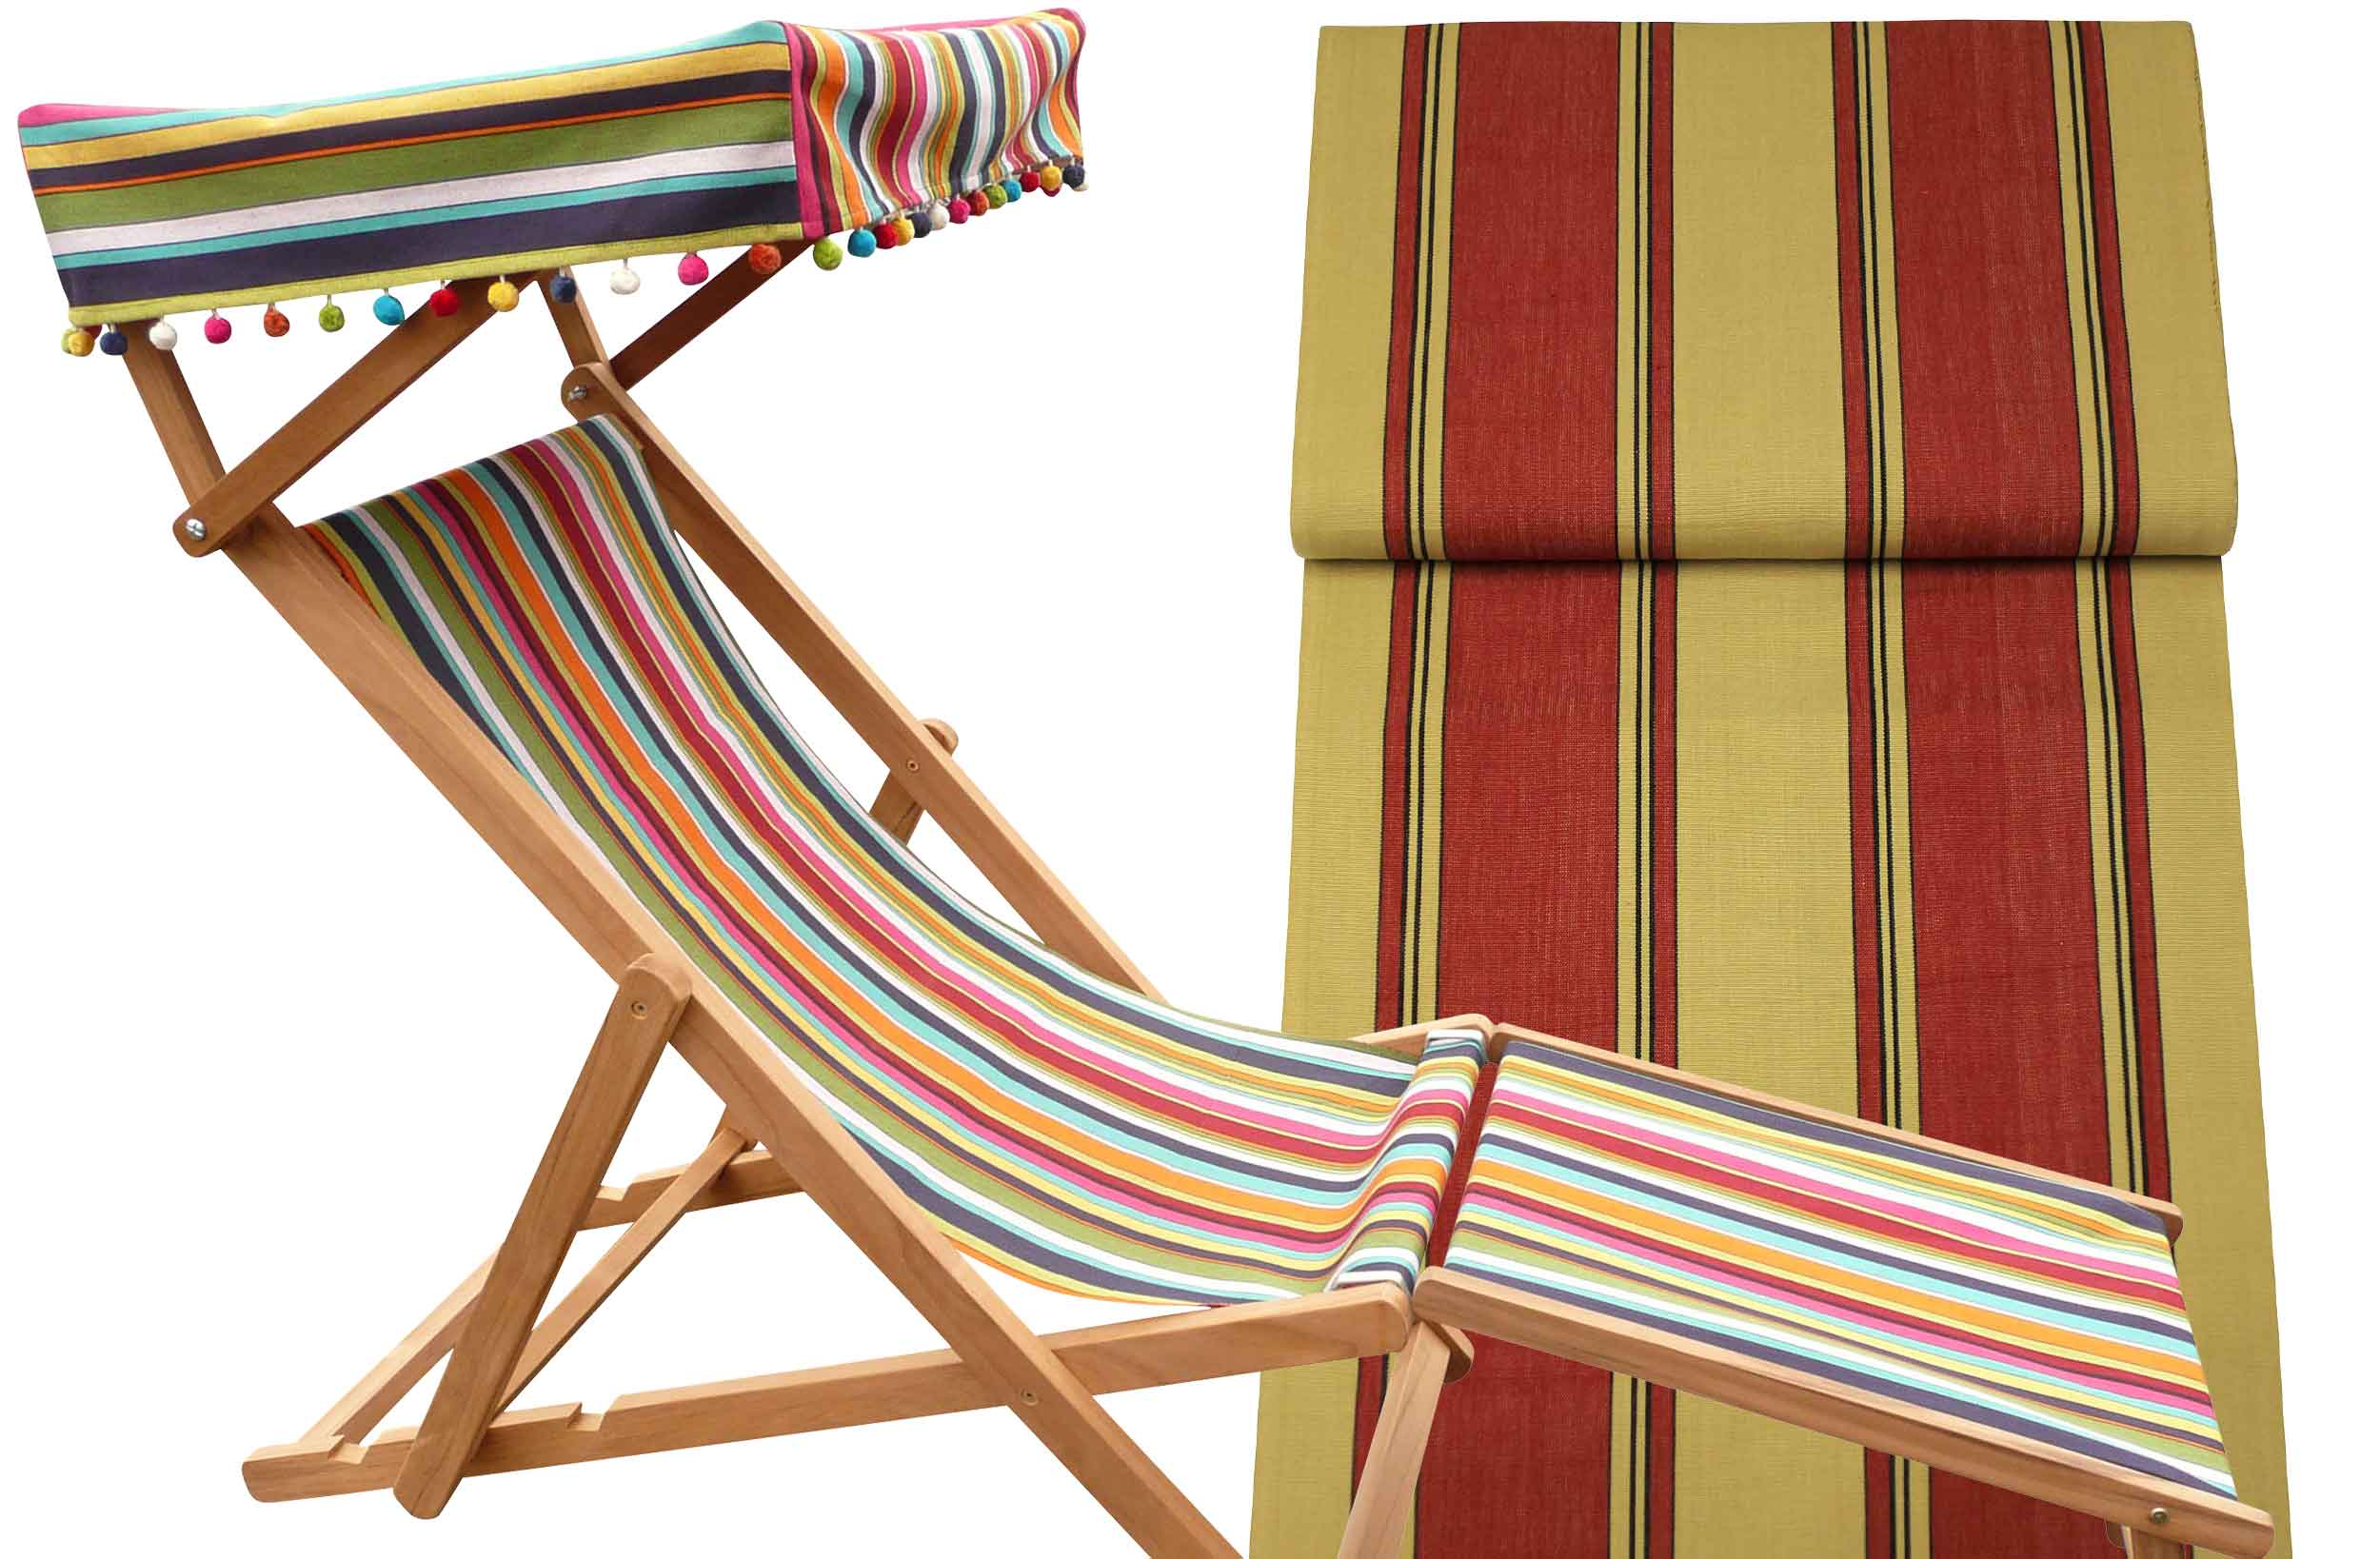 Edwardian Deckchairs with Canopy and Footstool red and beige wide stripes lined with thin black